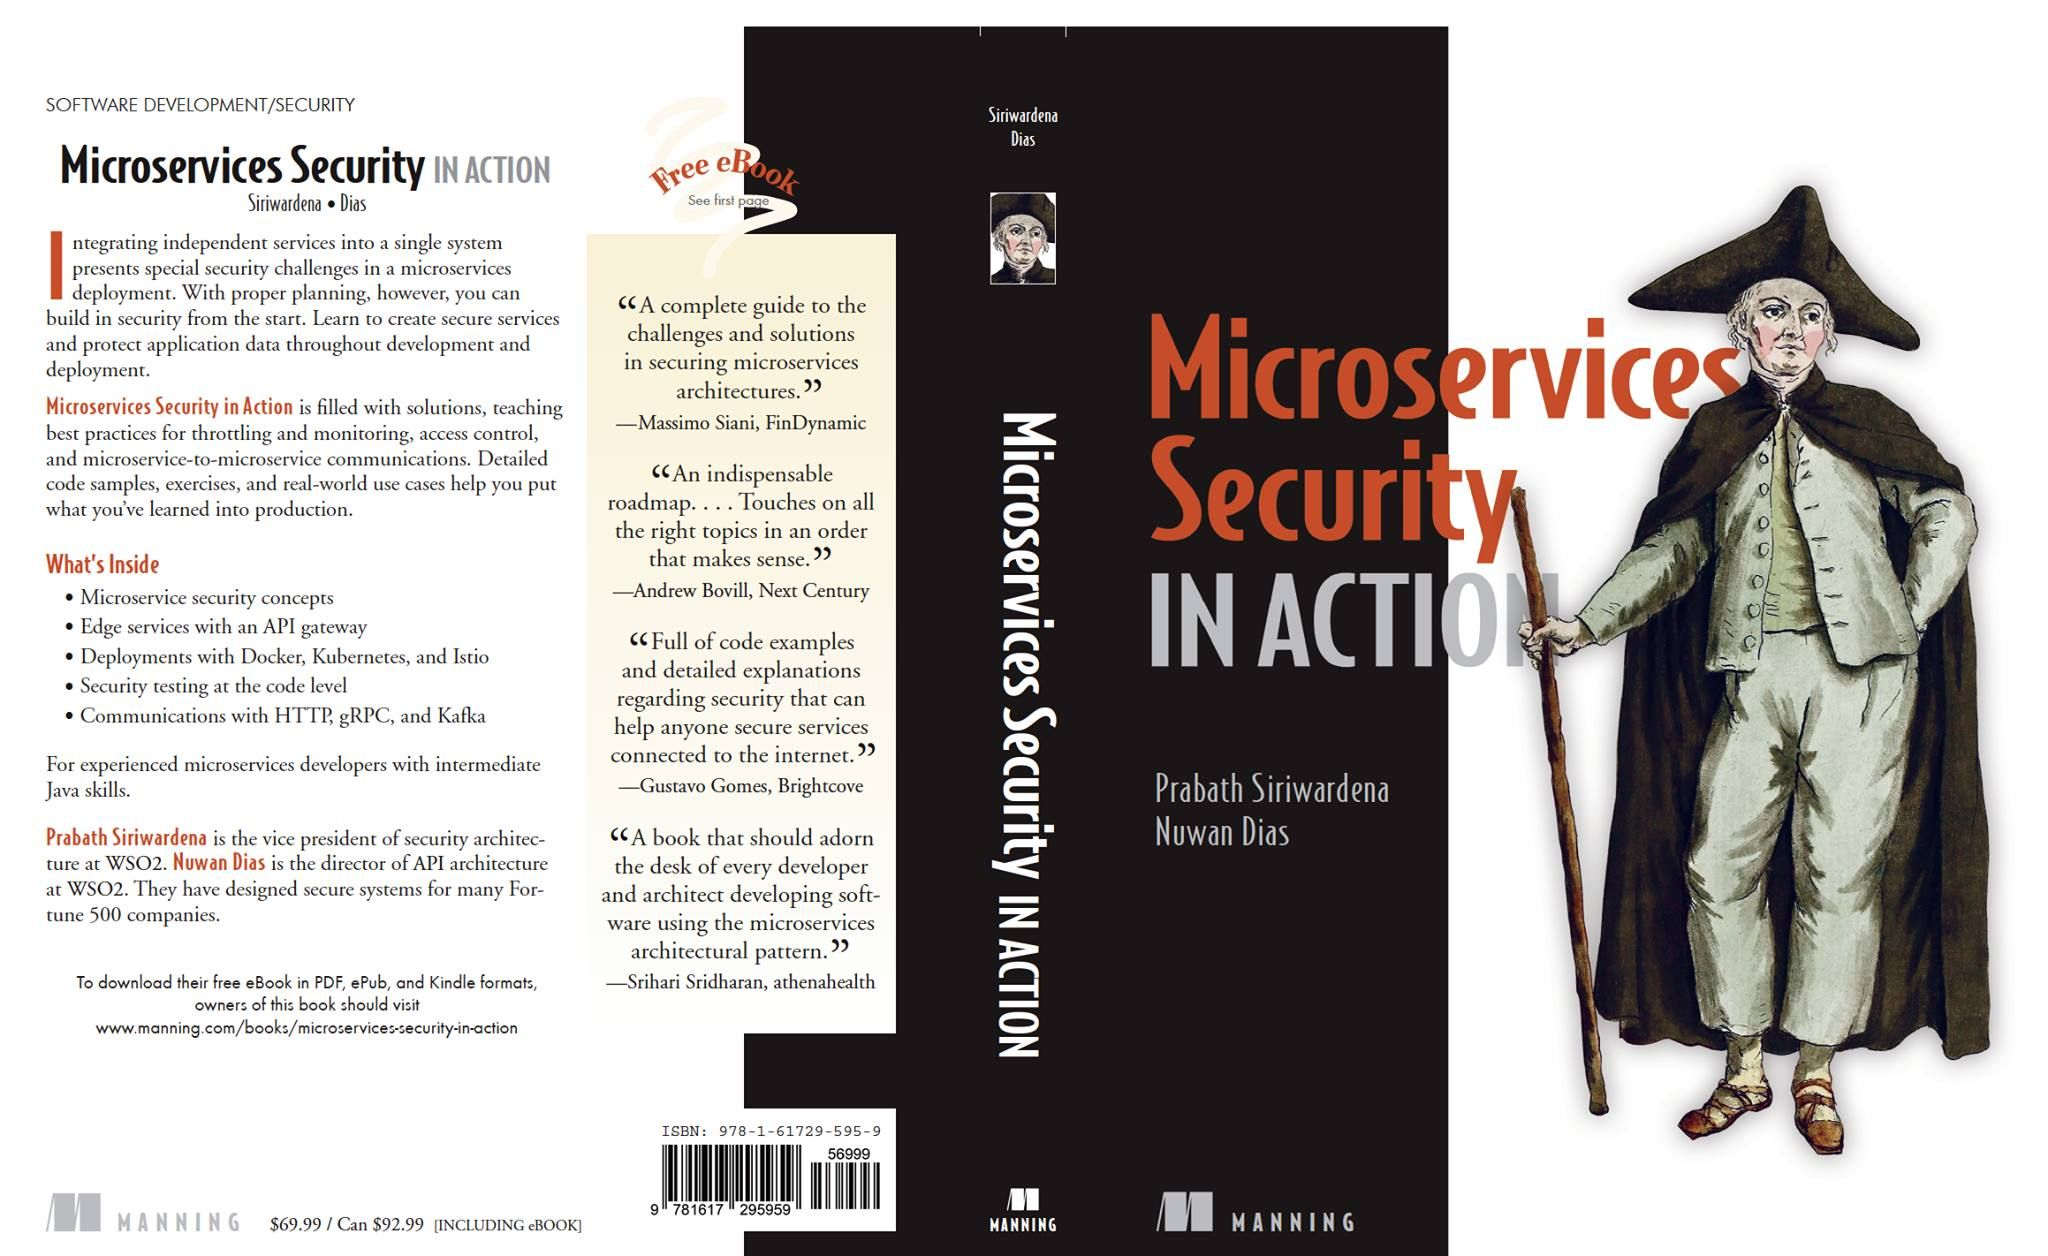 /introducing-microservices-security-in-action-o31r3twk feature image